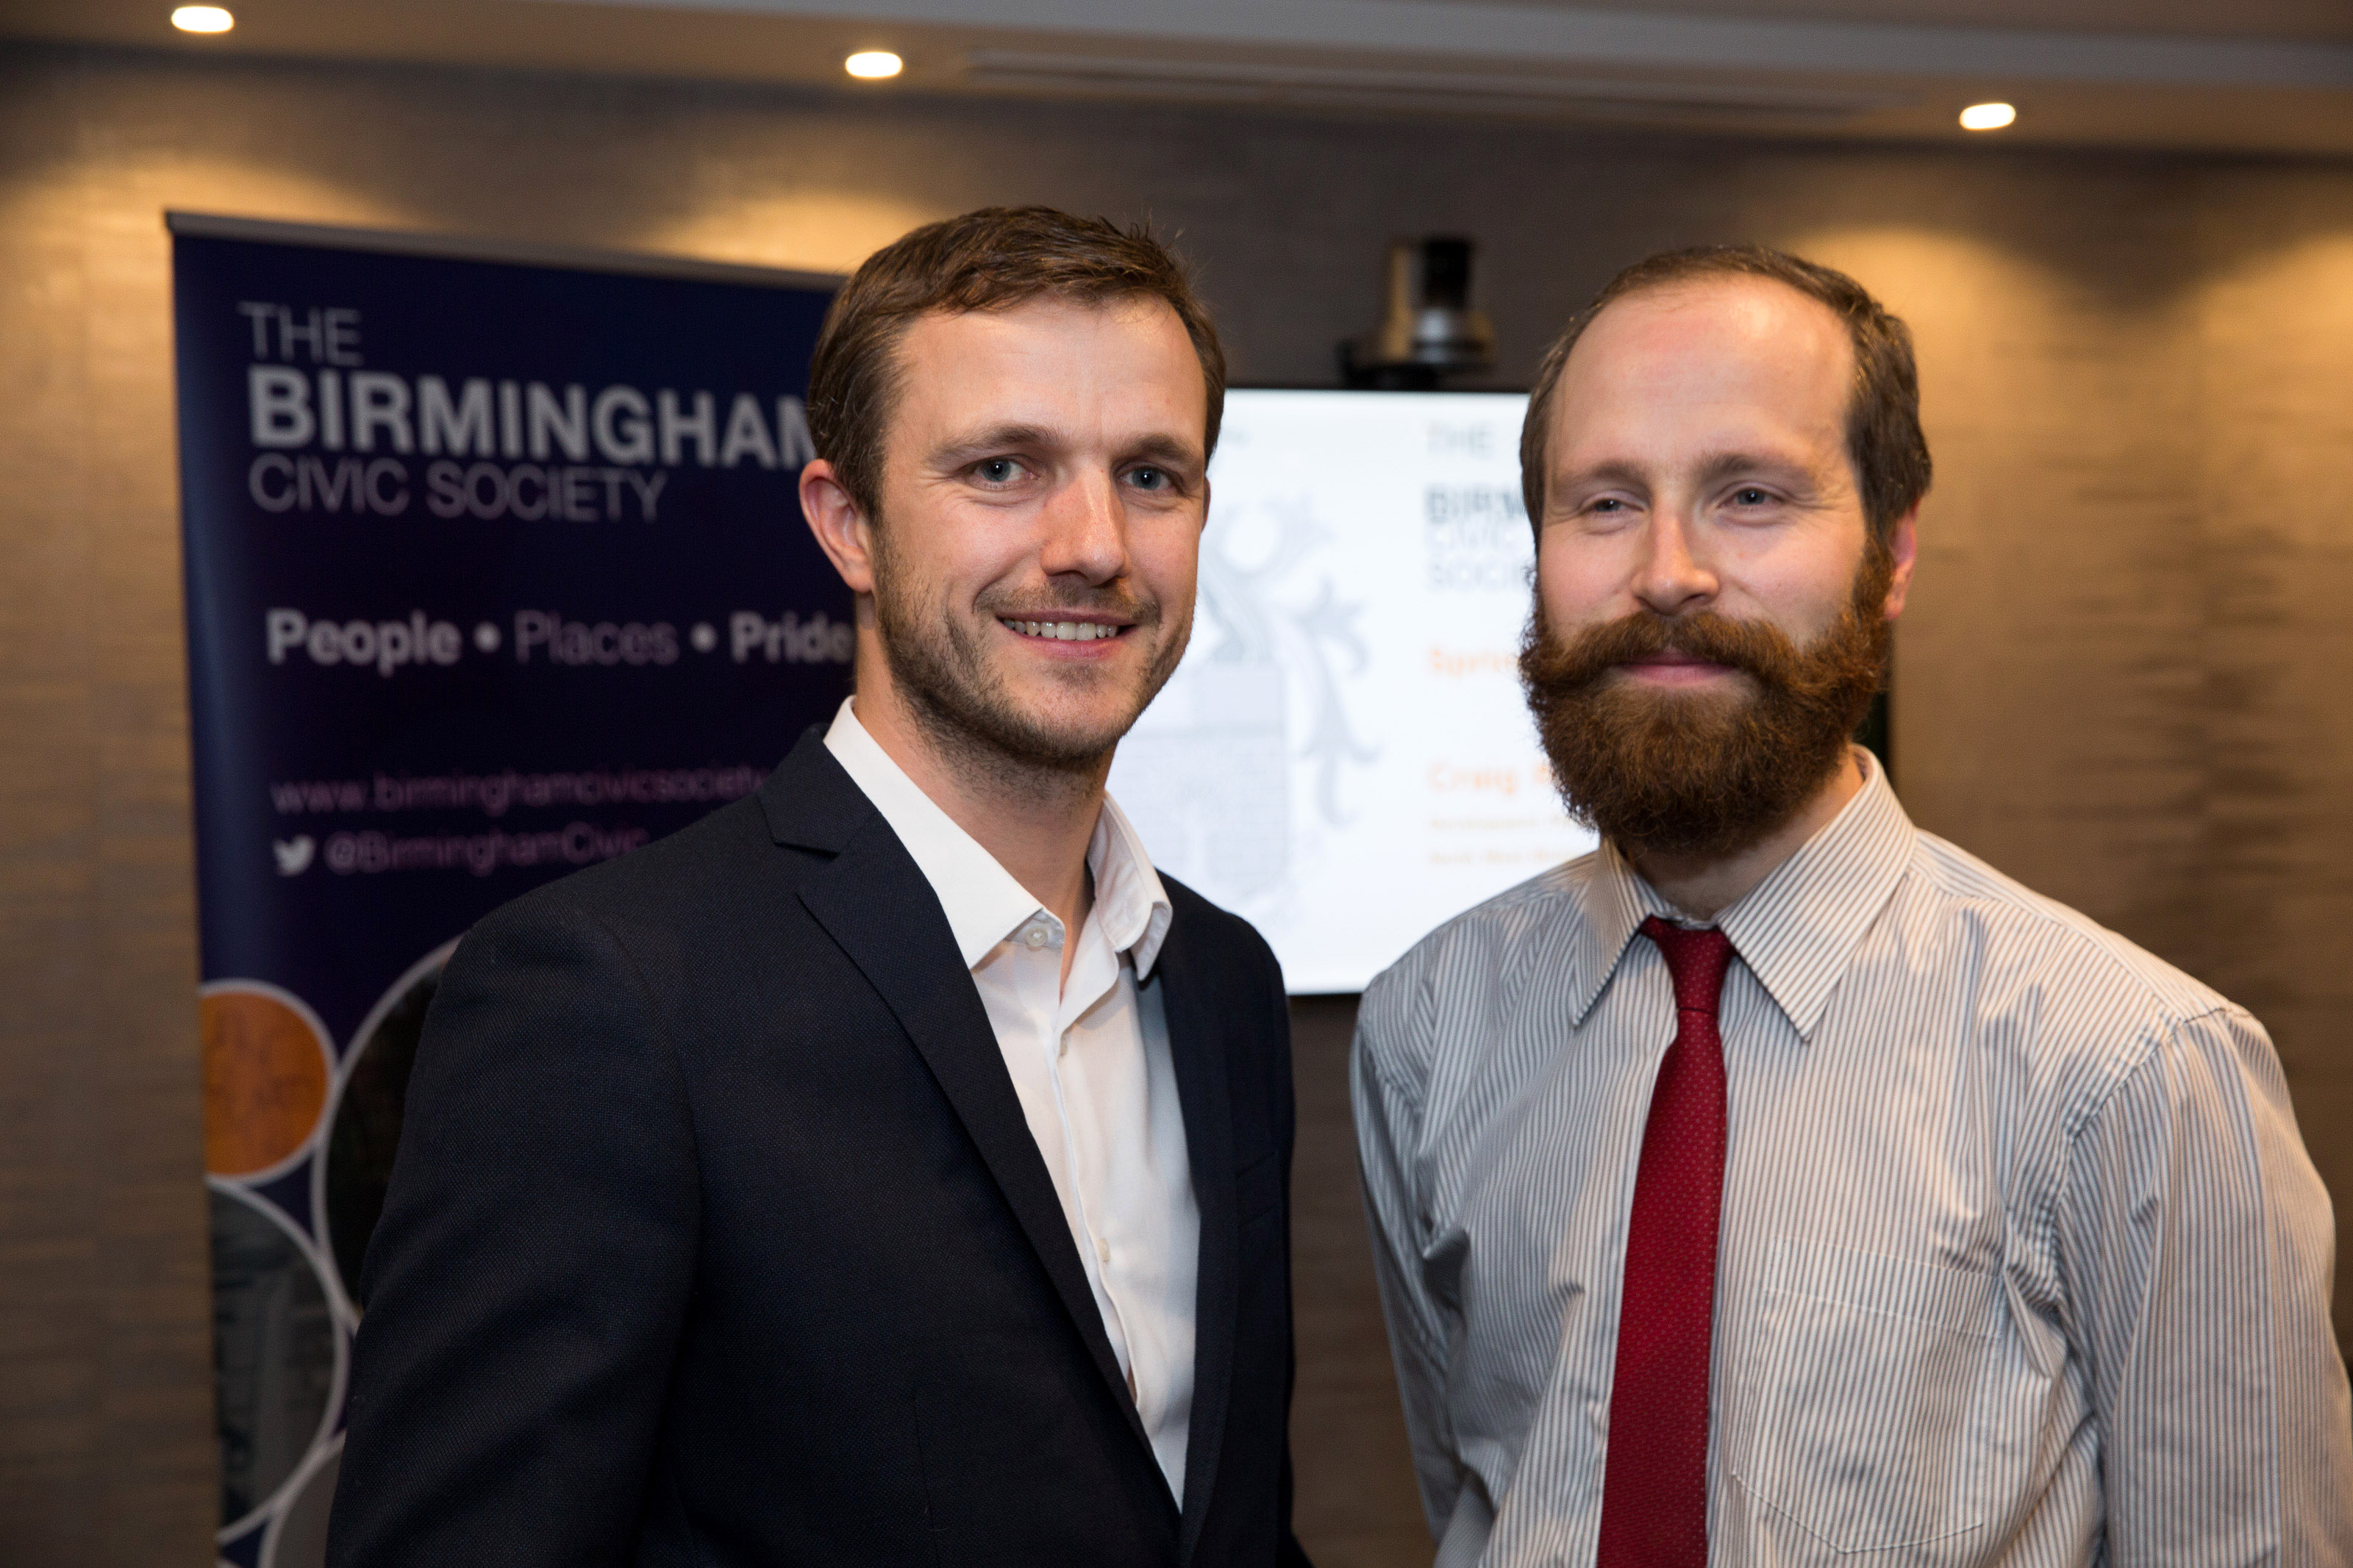 Pictured, Gavin Orton, left, with Craig Rowbottom